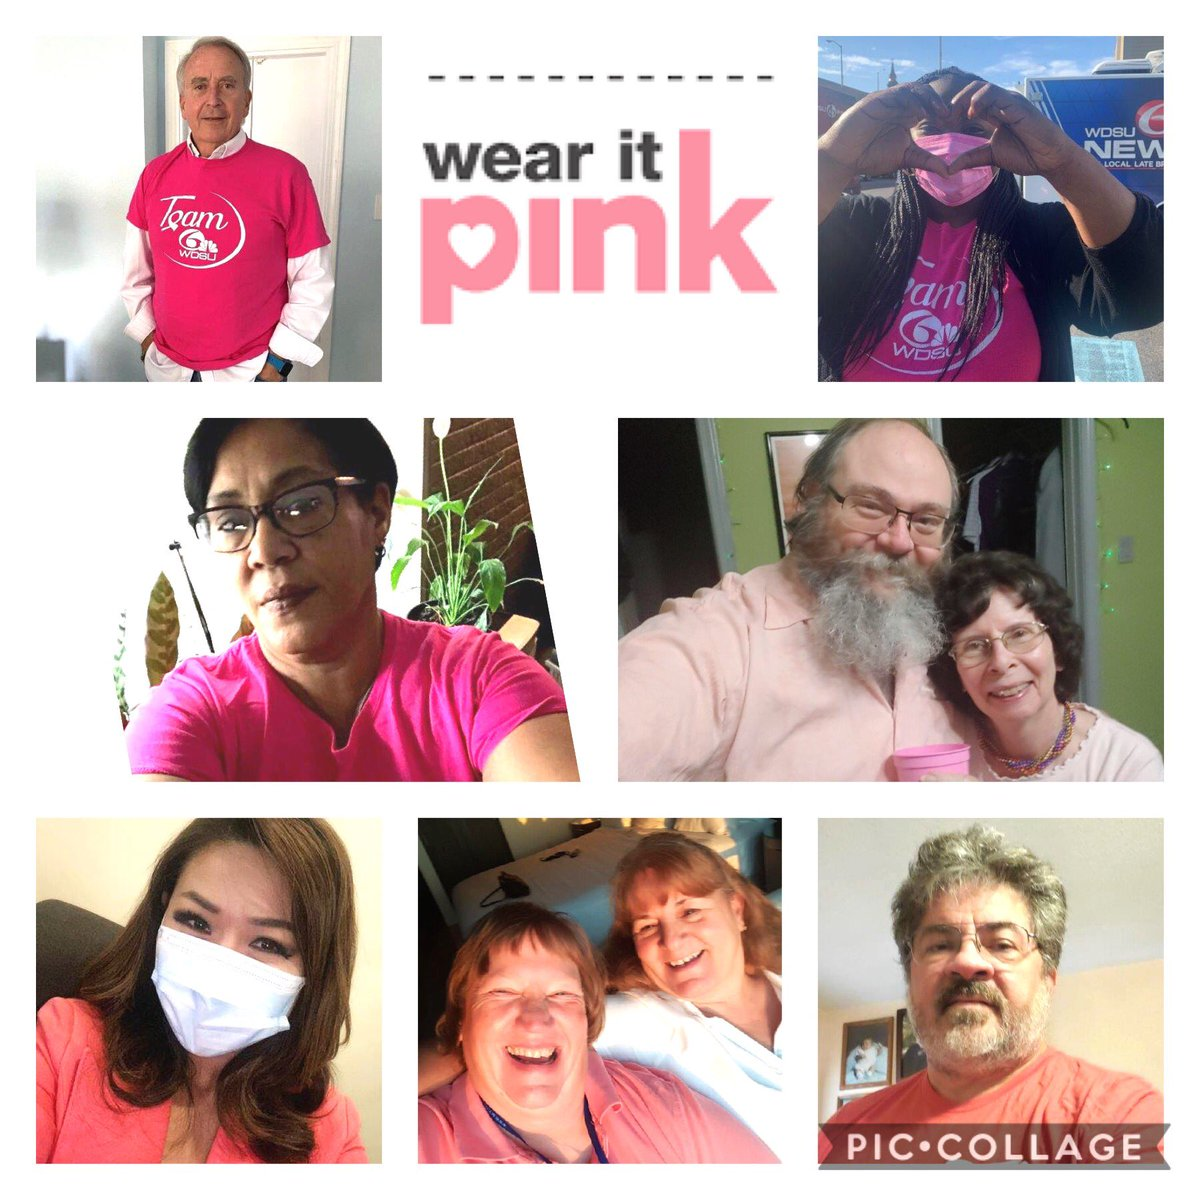 We're fresh off of the #MakingStridesNola weekend. Some of the @wdsu fam pulled out the pink to spread a little #hope. You can still done!  #wearitpink @wdsu